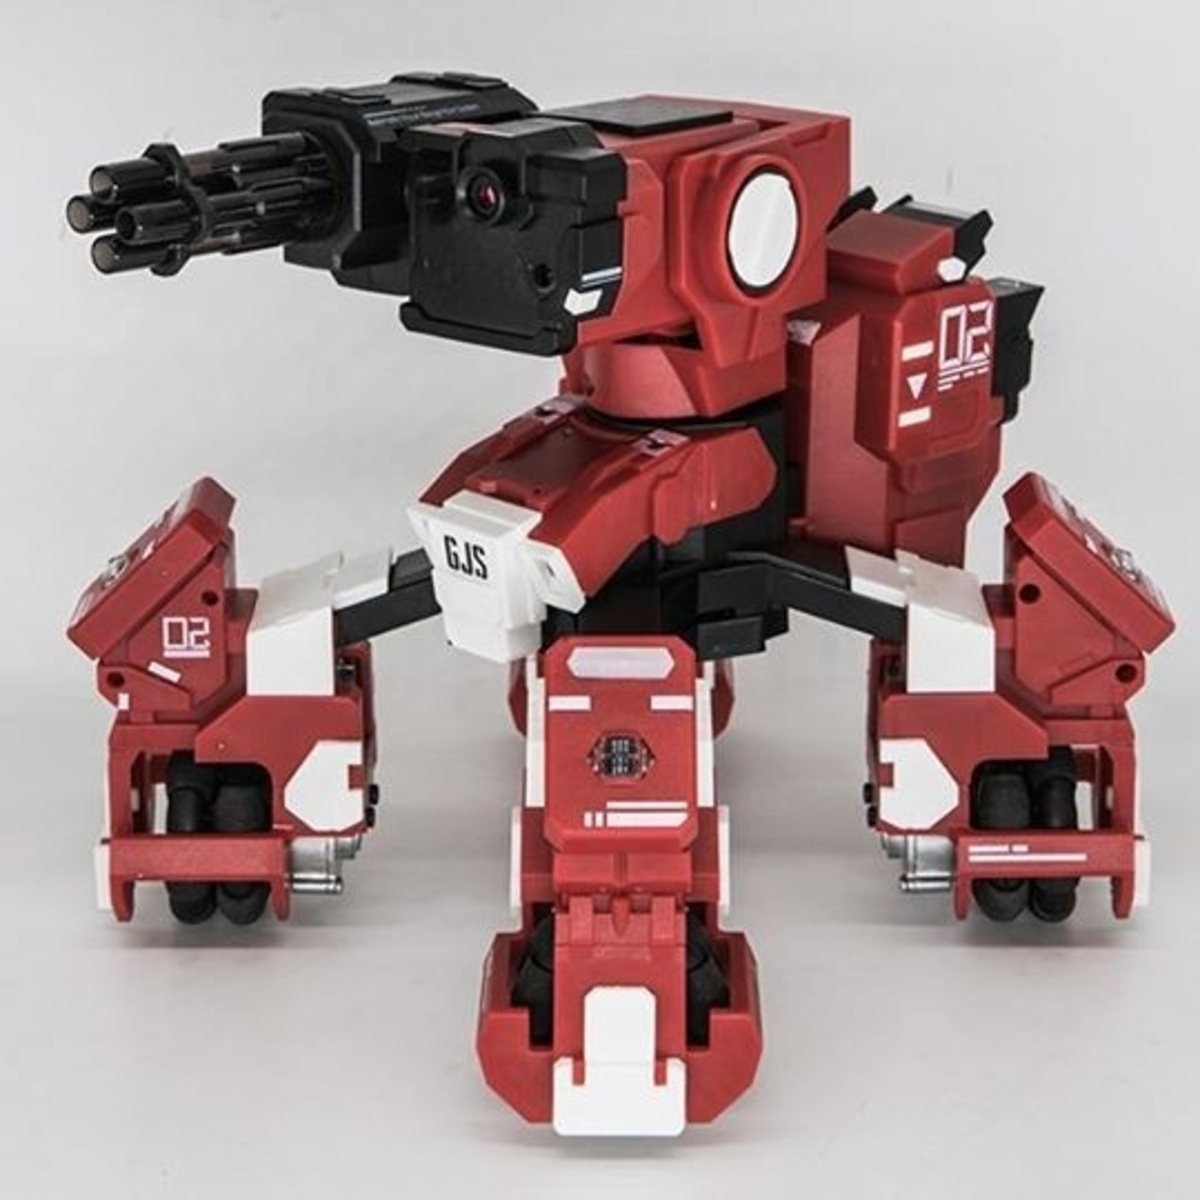 GJS GEIO Face-to-face GAMING ROBOT Red (1 year warranty)